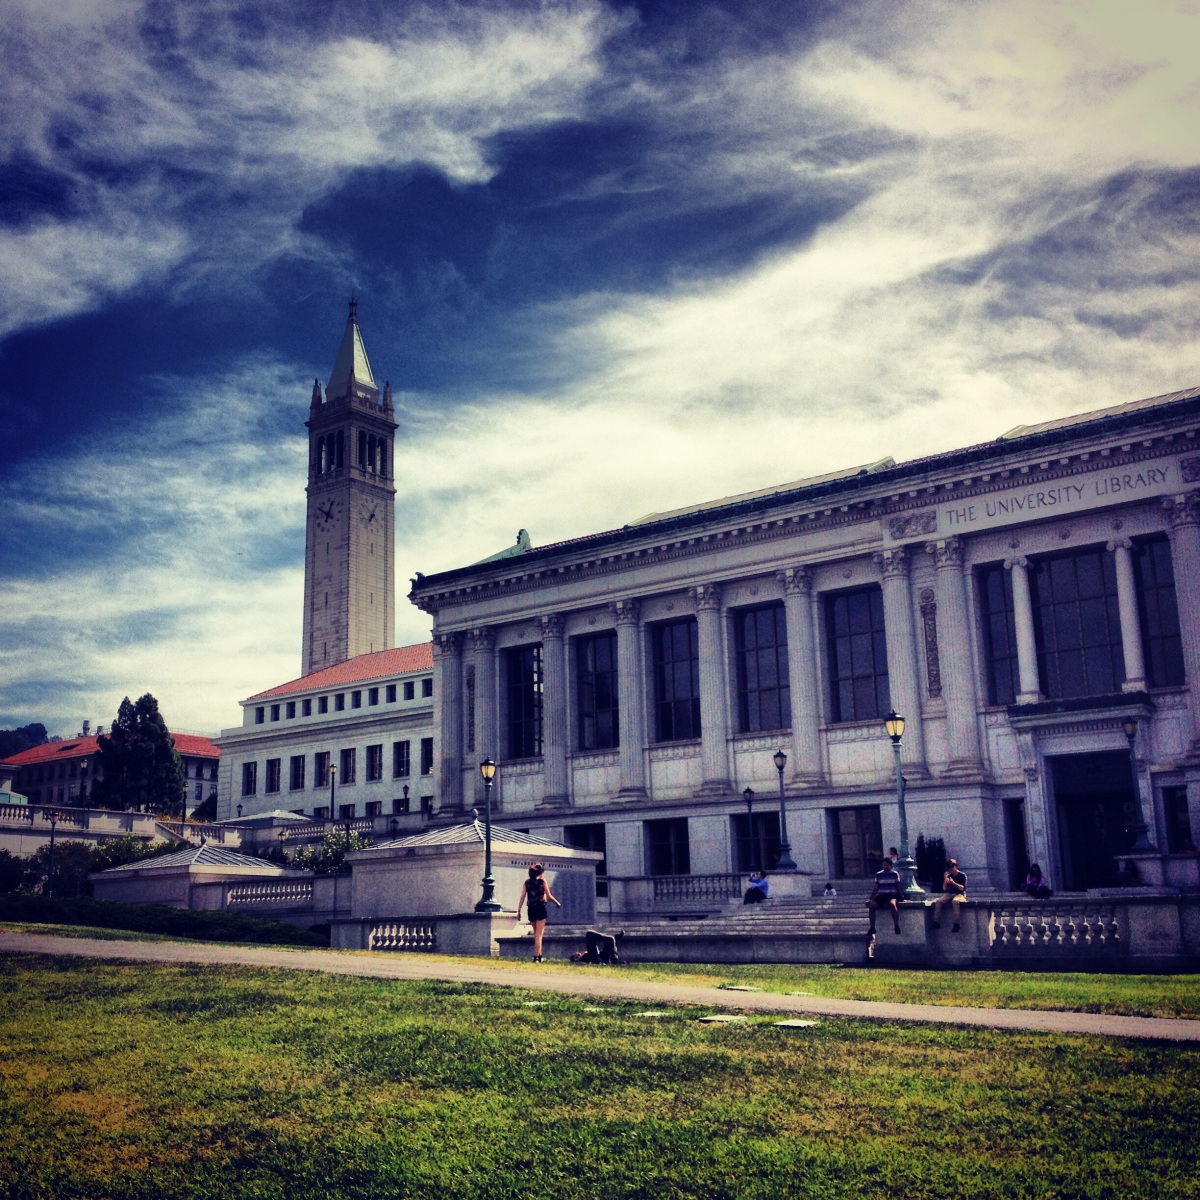 berkeley essay questions The uc berkeley mba admissions committee has announced the haas essay topics for applicants targeting the class of 2019 haas mba applicants will.